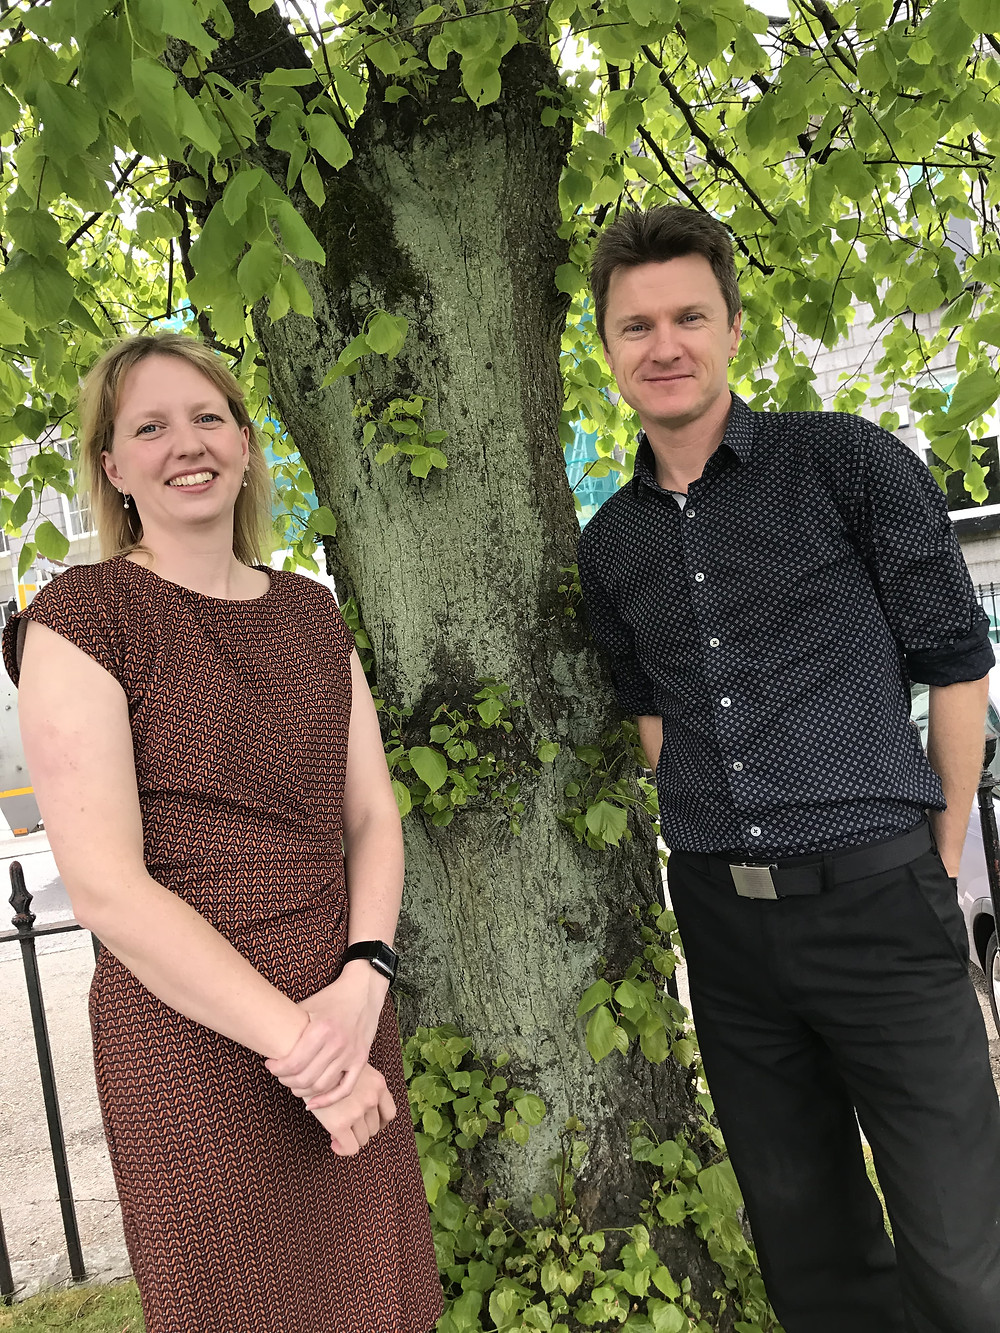 Evolve iMS will be headed up by service delivery manager, Lisa Reid, and Toby Crowther, Technical Consultant